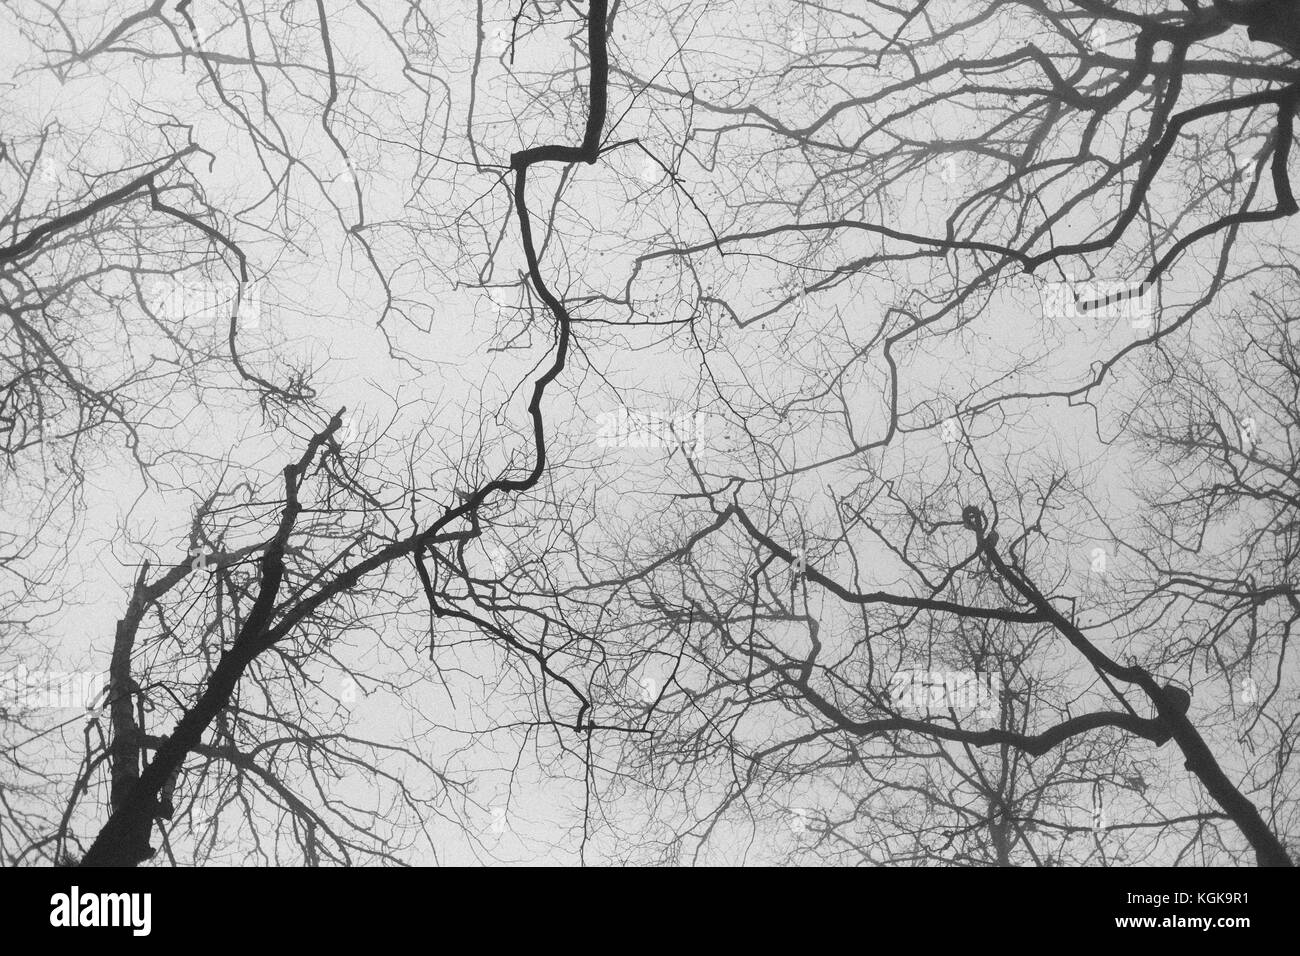 Look at winter branches from below at Castelo dos Mouros, Sintra, Portugal. - Stock Image